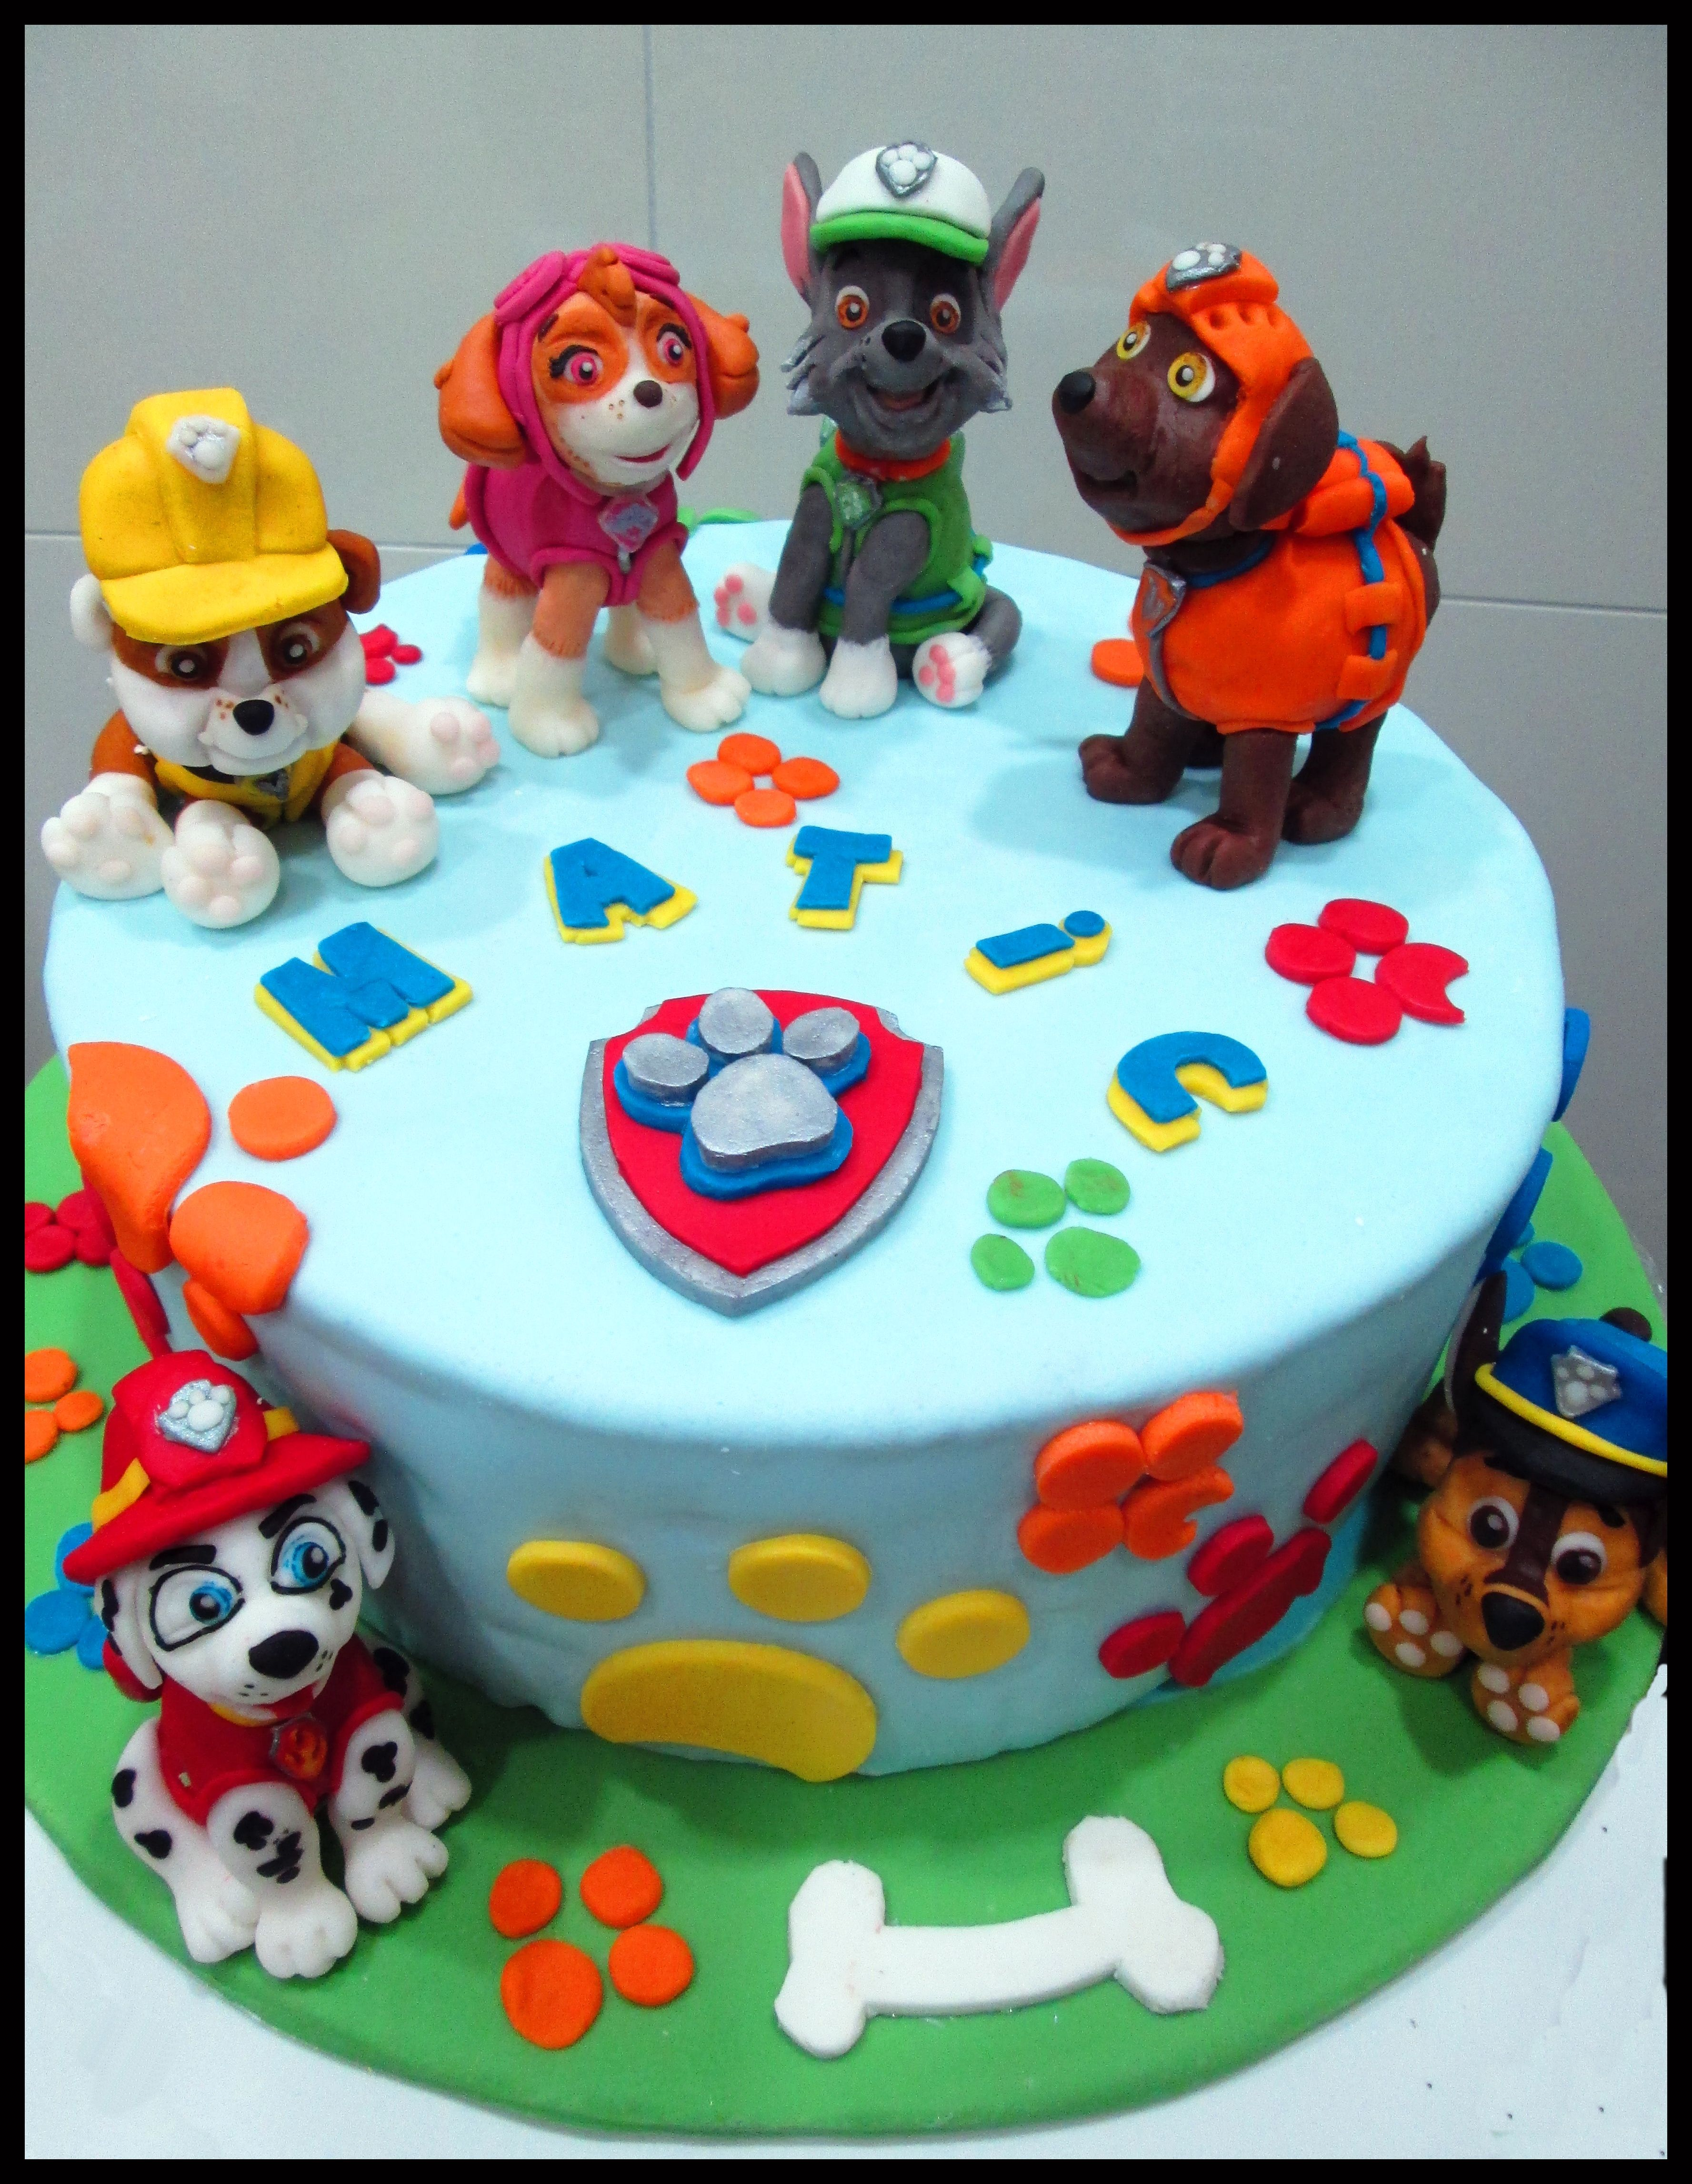 Paw Patrol Cake Figurines From Modelling Chocolate Birthday - Birthday cake figurines